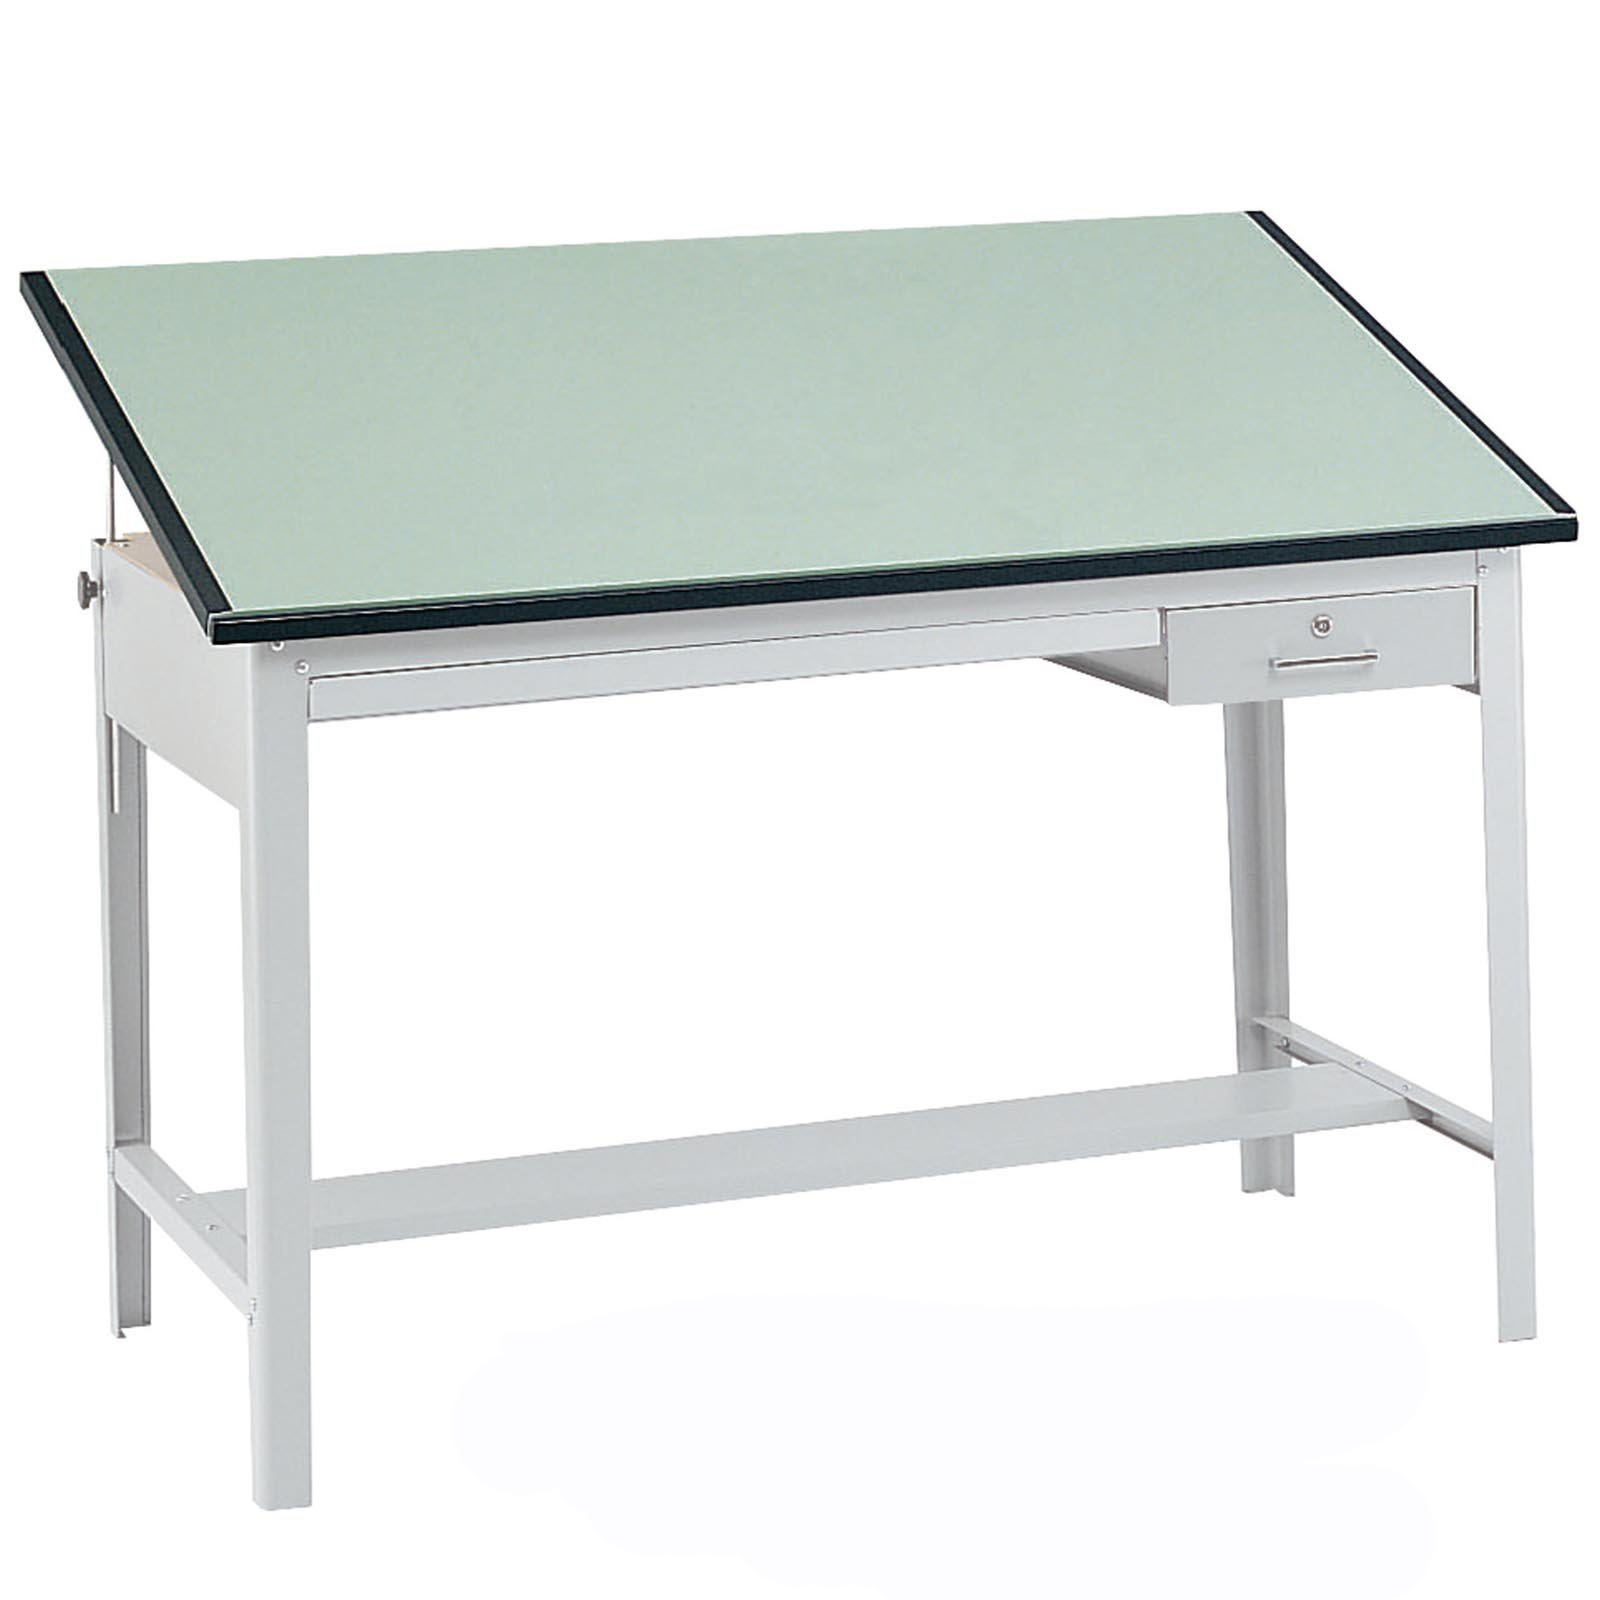 Safco precision adjustable drafting table